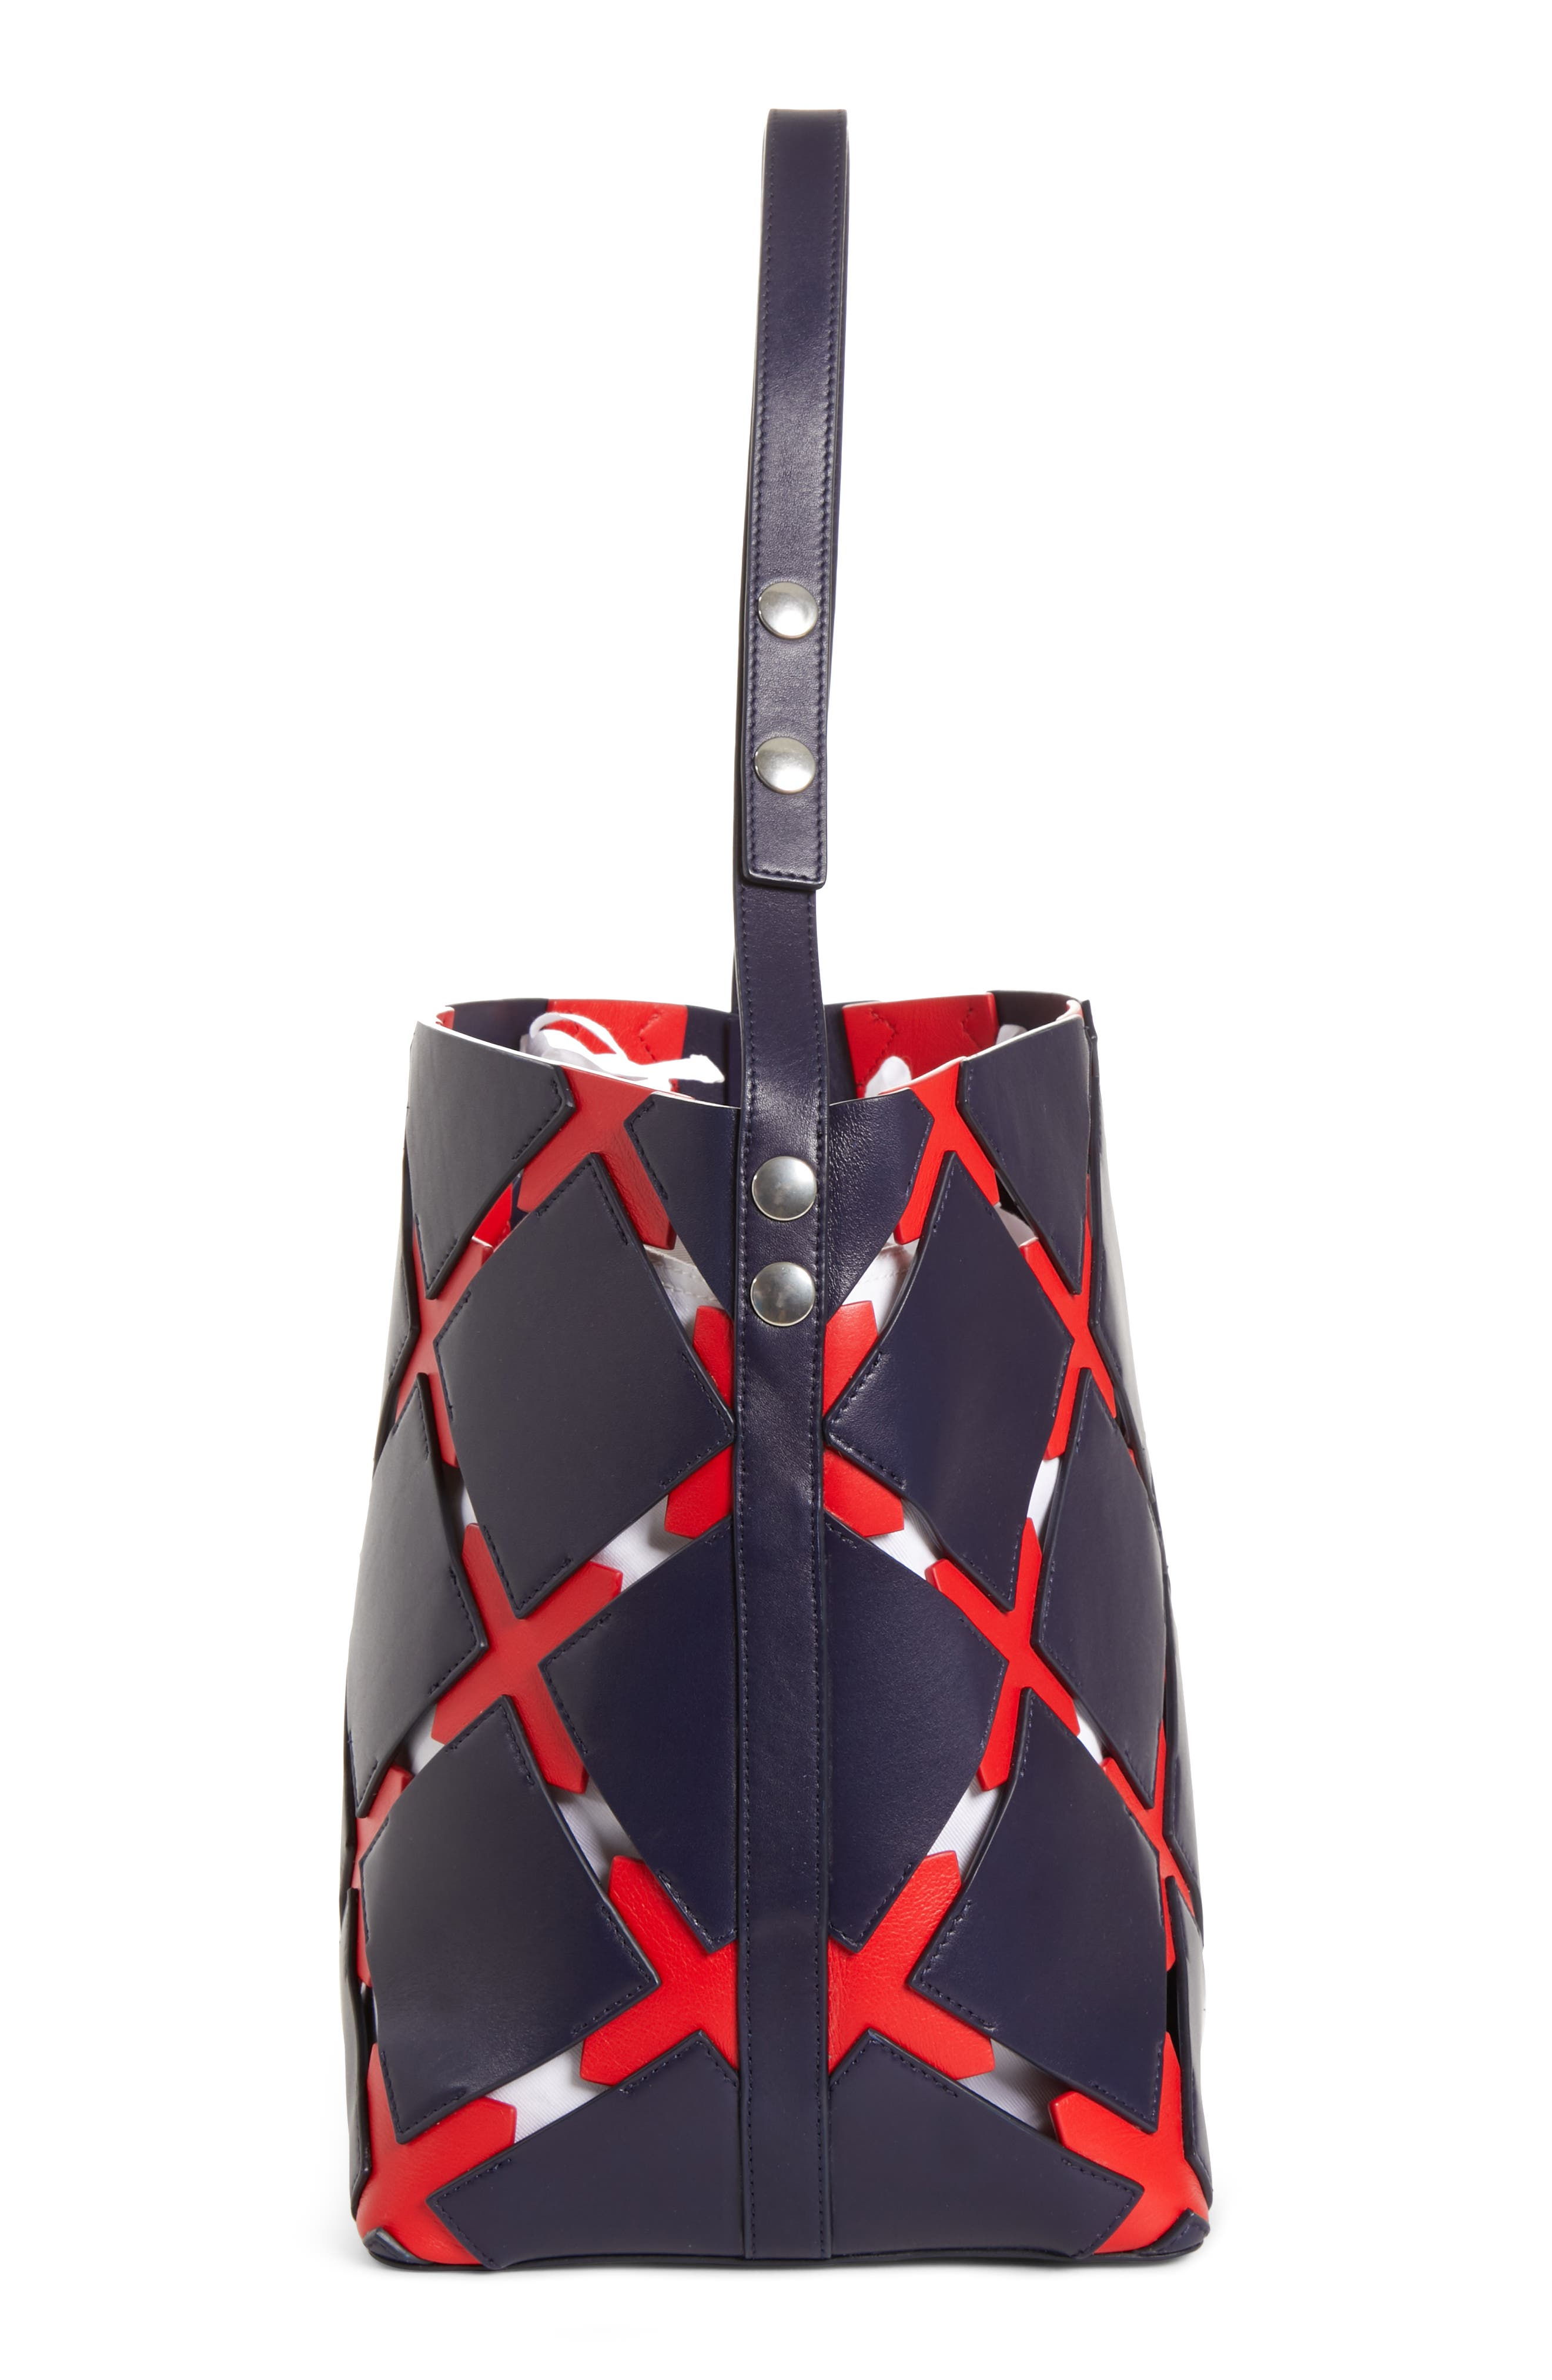 CALVIN KLEIN 205W39NYC, Patchwork Quilt Leather Bucket Bag, Alternate thumbnail 5, color, 424